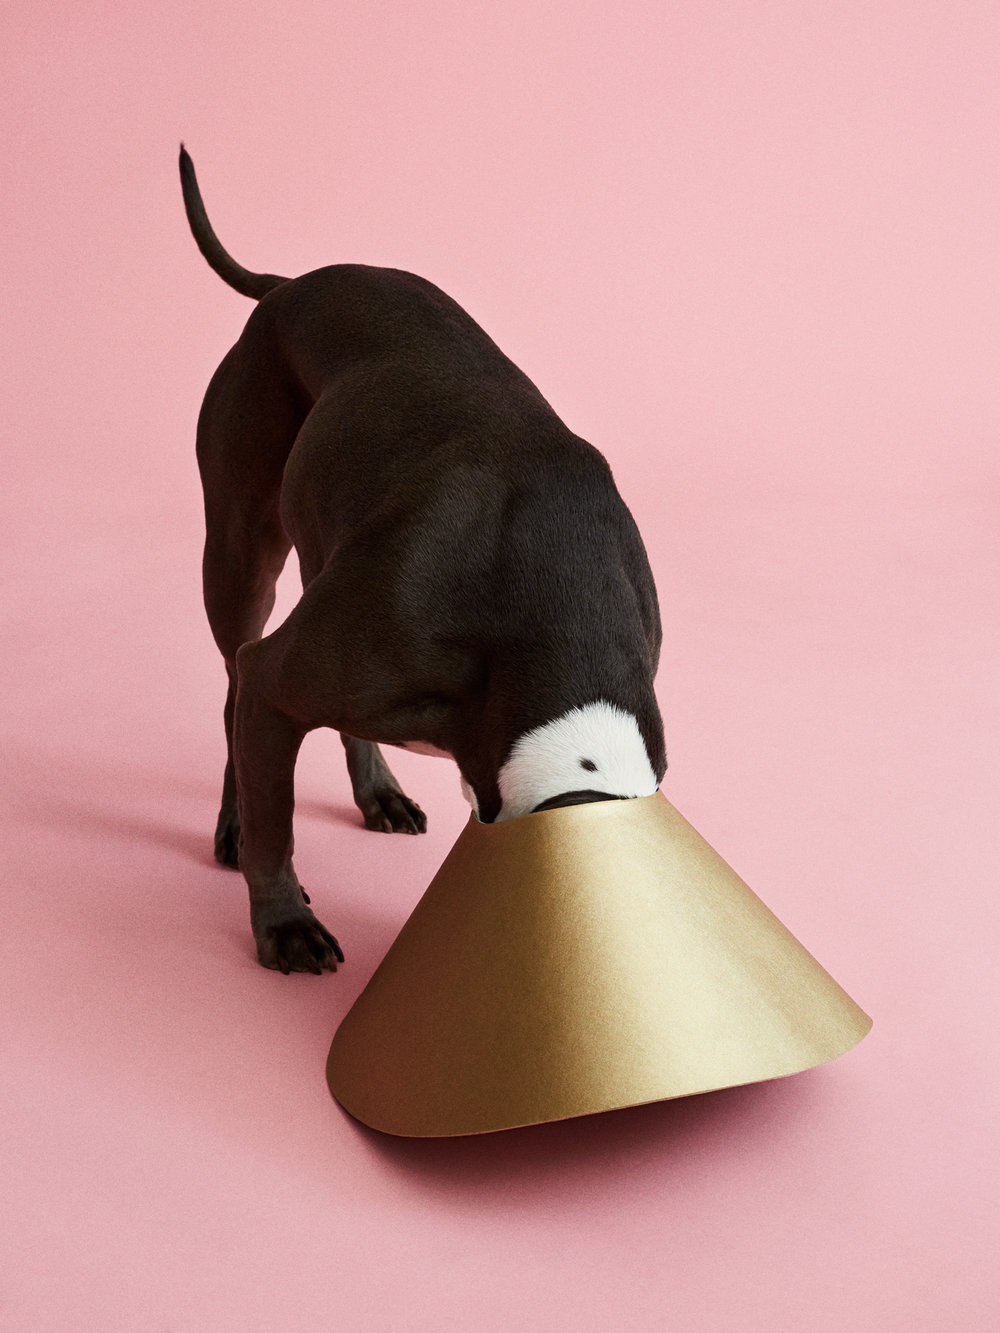 Cone of Shame